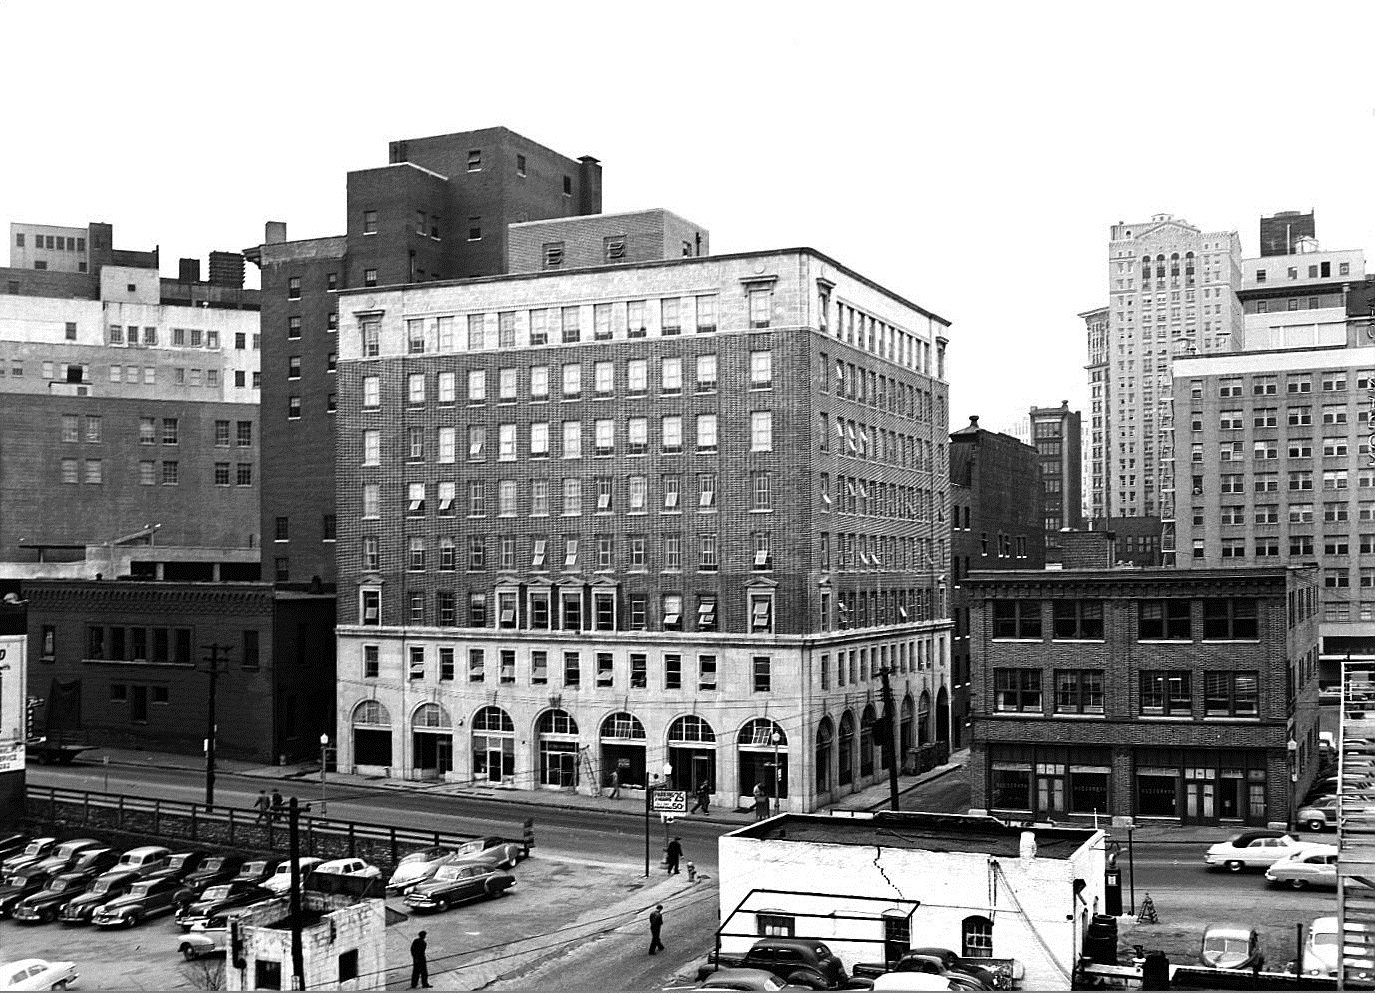 The Switchyards Building and its old neighbor the Baptist Home Mission Building on January 9, 1950 - Georgia State University Library